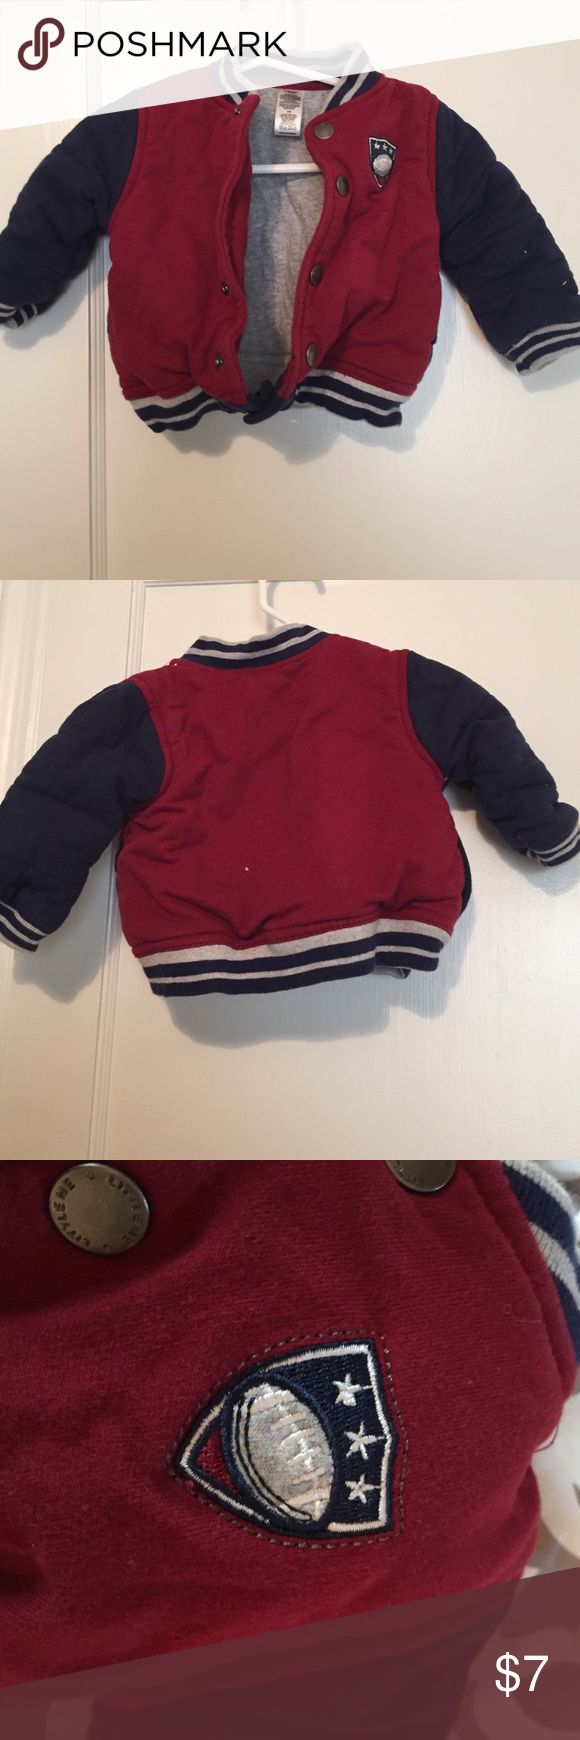 NWOT Baby boys fall football jacket This is a NWOT adorable baby boys fall football jacket. It has snap closures and a sweatshirt like lining. Perfect for those little football fans on a chilly day. This was given to my baby as a gift and I washed it and now he is too big for it. Size 12 months. Comes from a smoke free home. Jackets & Coats